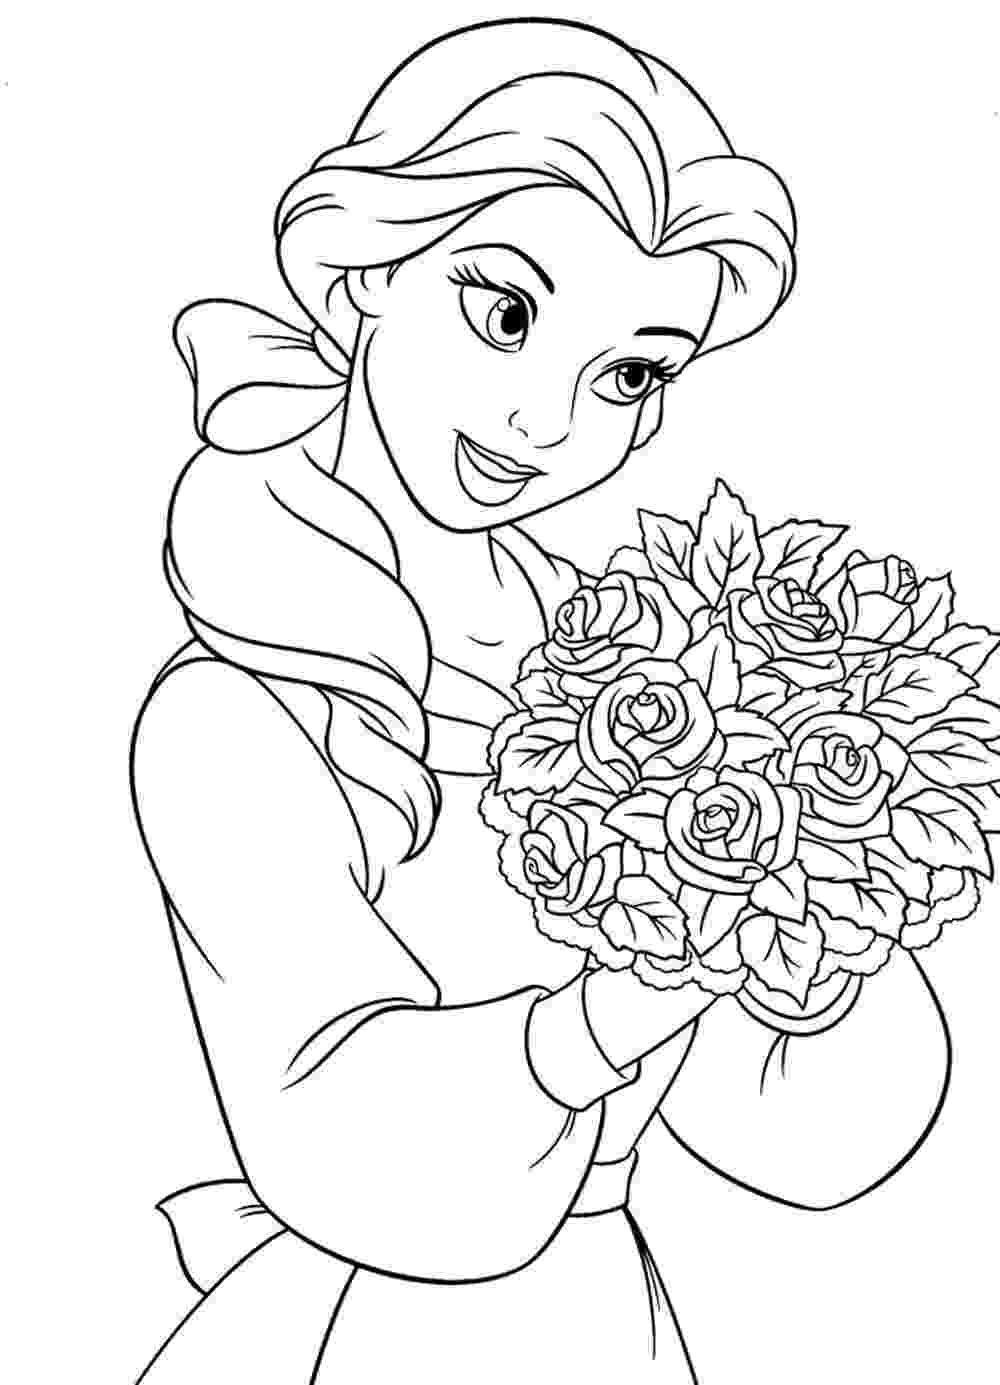 girl coloring books princess coloring pages for girls free large images coloring girl books